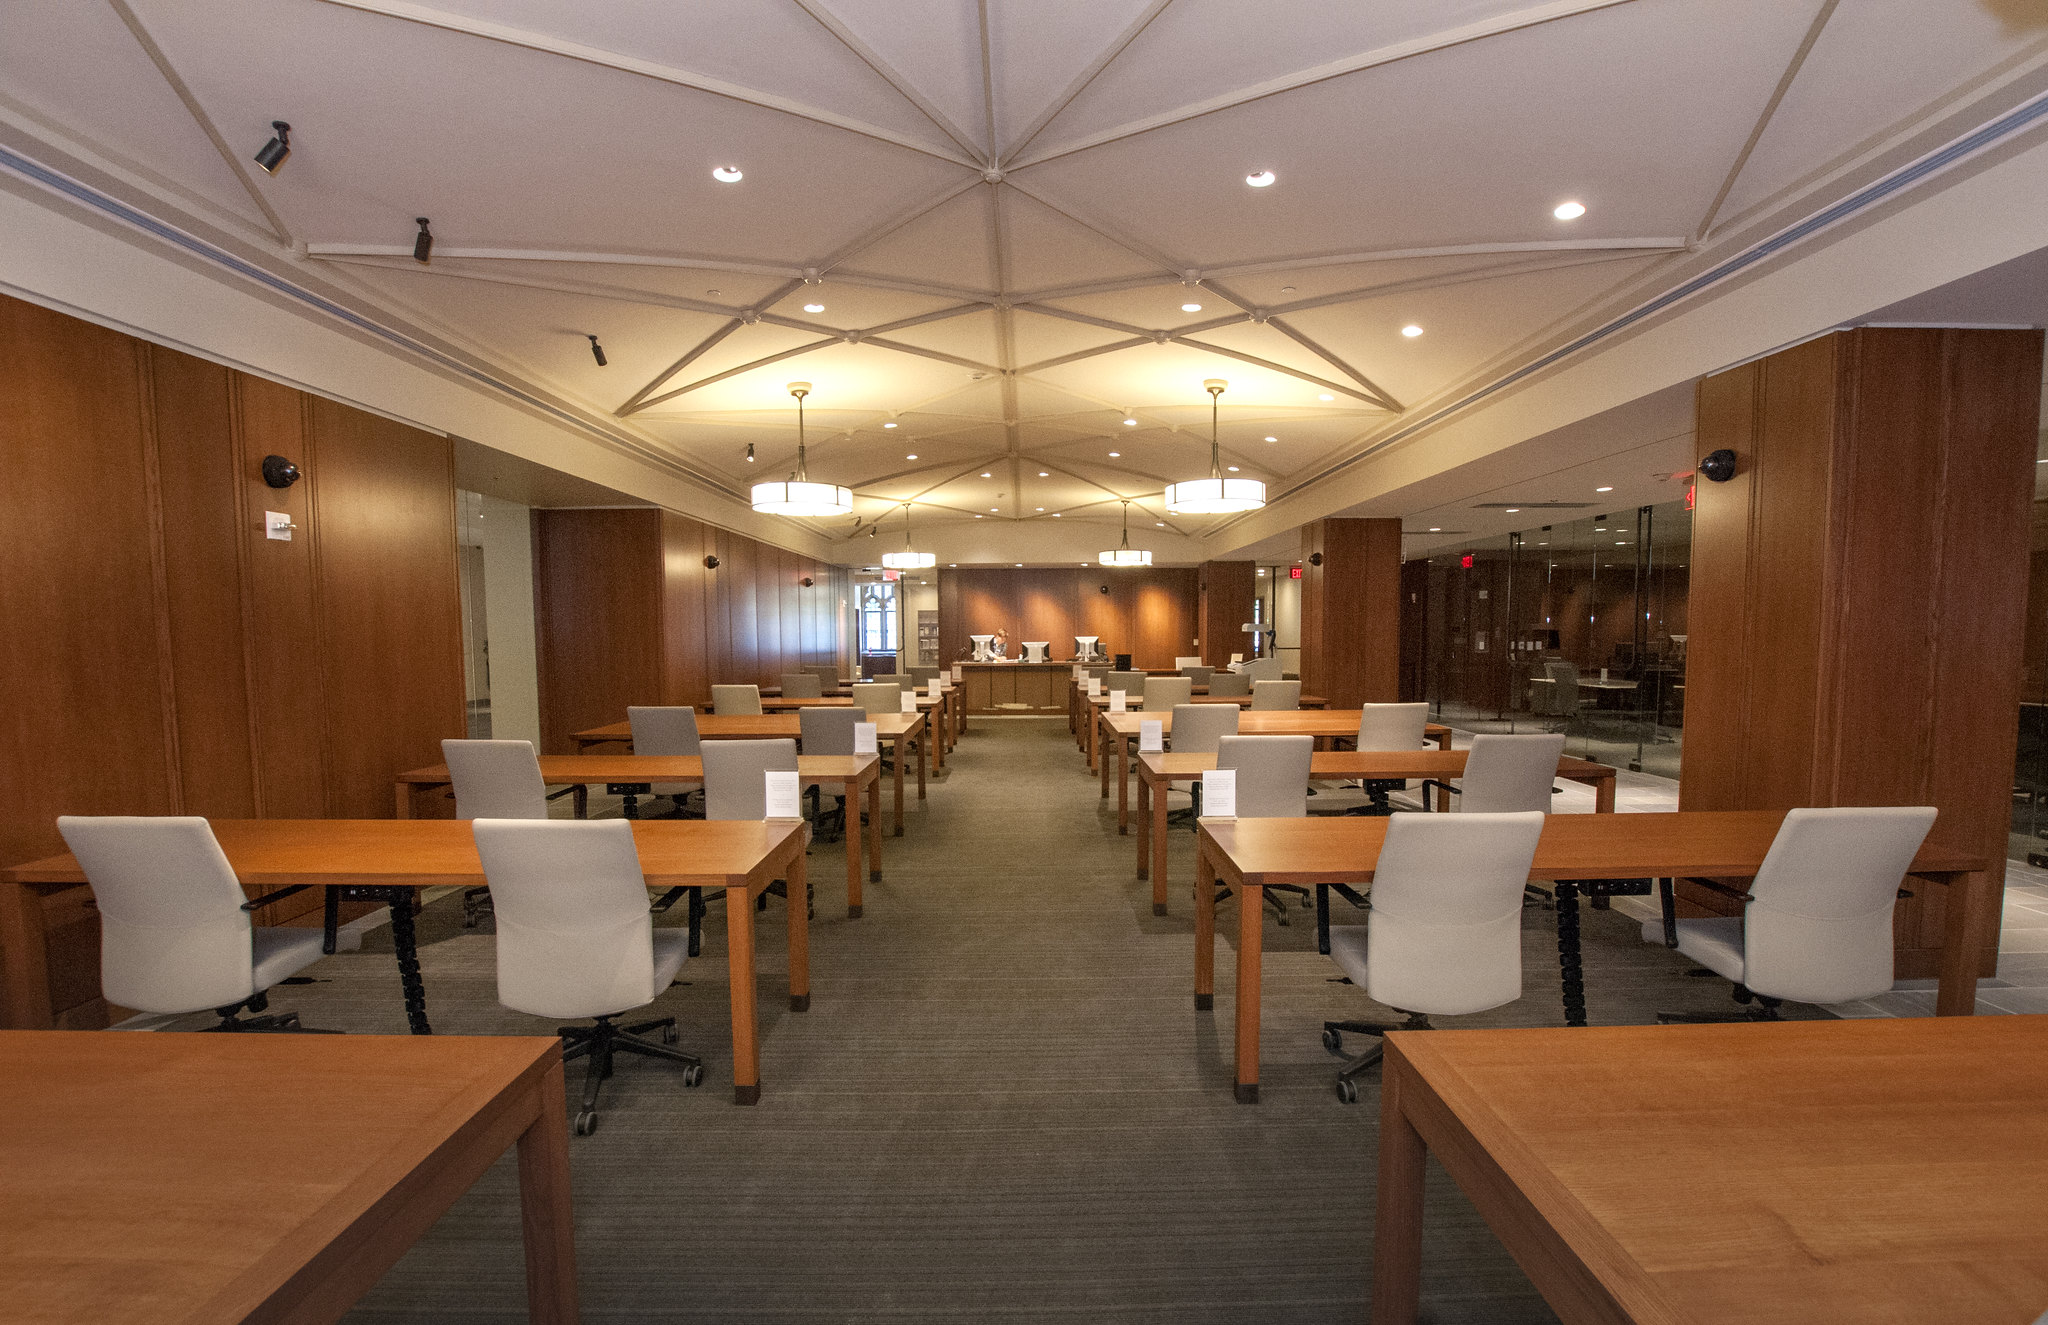 The reading room of the David M. Rubenstein Rare Book & Manuscript Library, taken from the back. Two columns of tables and chairs lead to the reference desk and reading room doors. The walls are wood paneled and the ceilings are vaulted.